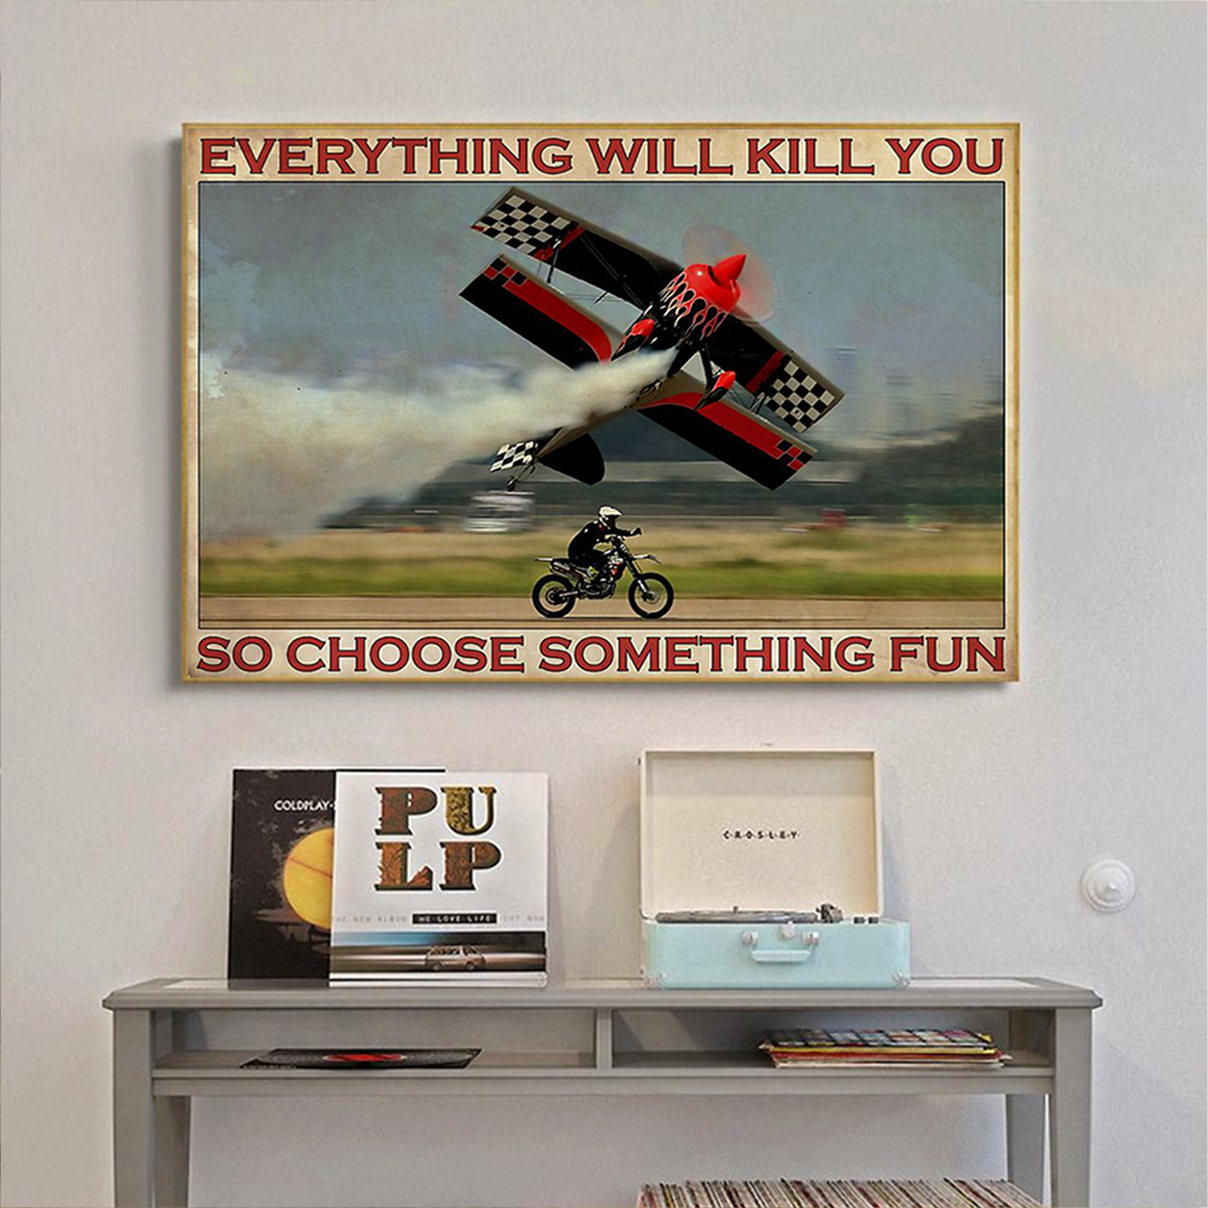 Enduro aircraft everything will kill you so choose something fun poster A2